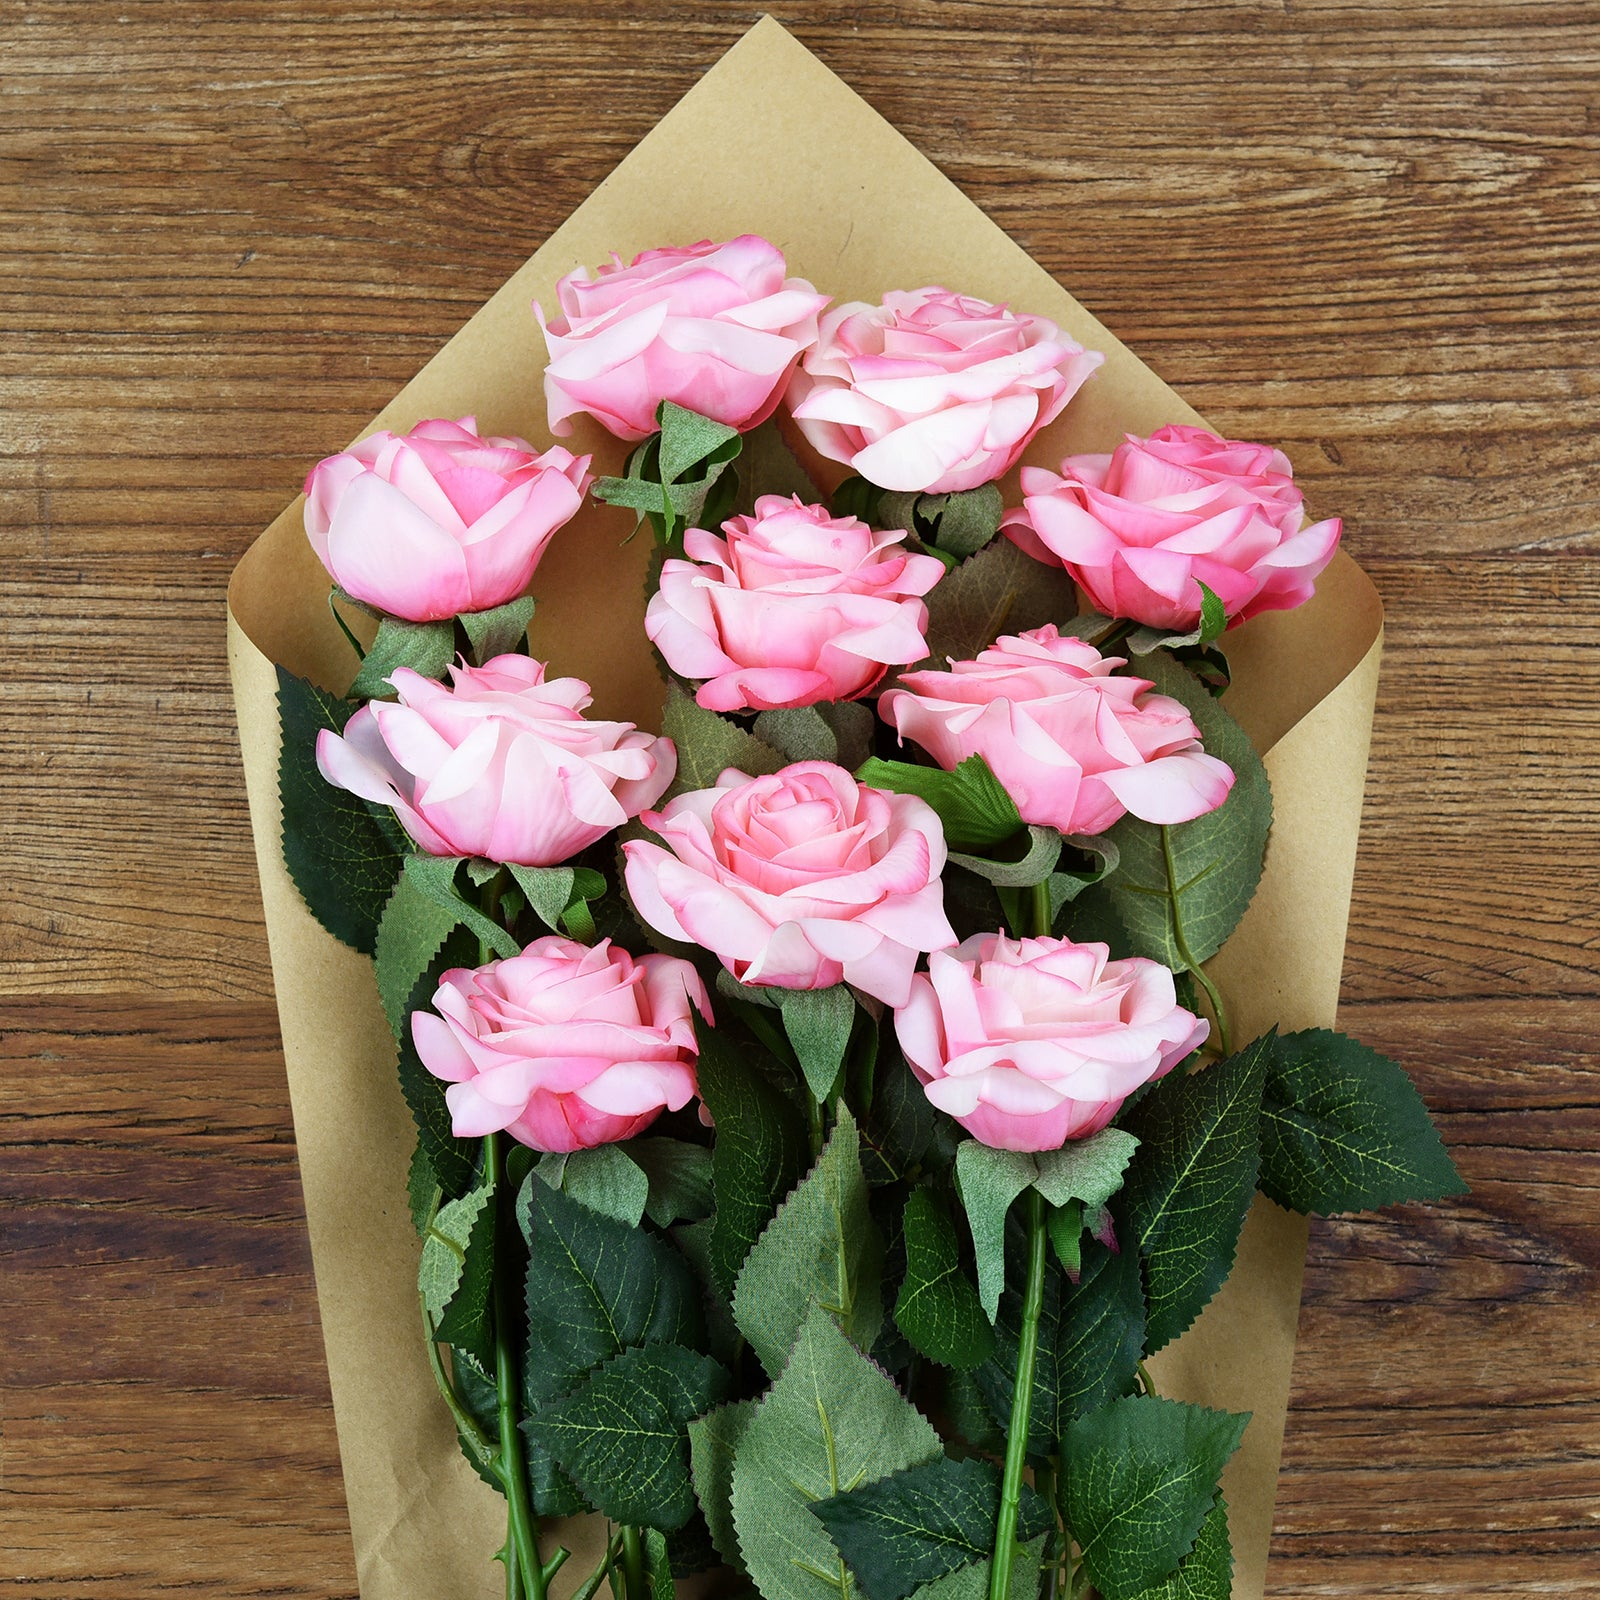 Pink Swirl Real Touch Silk Artificial Flowers 'Petals Feel and Look like Fresh Roses 10 Stems